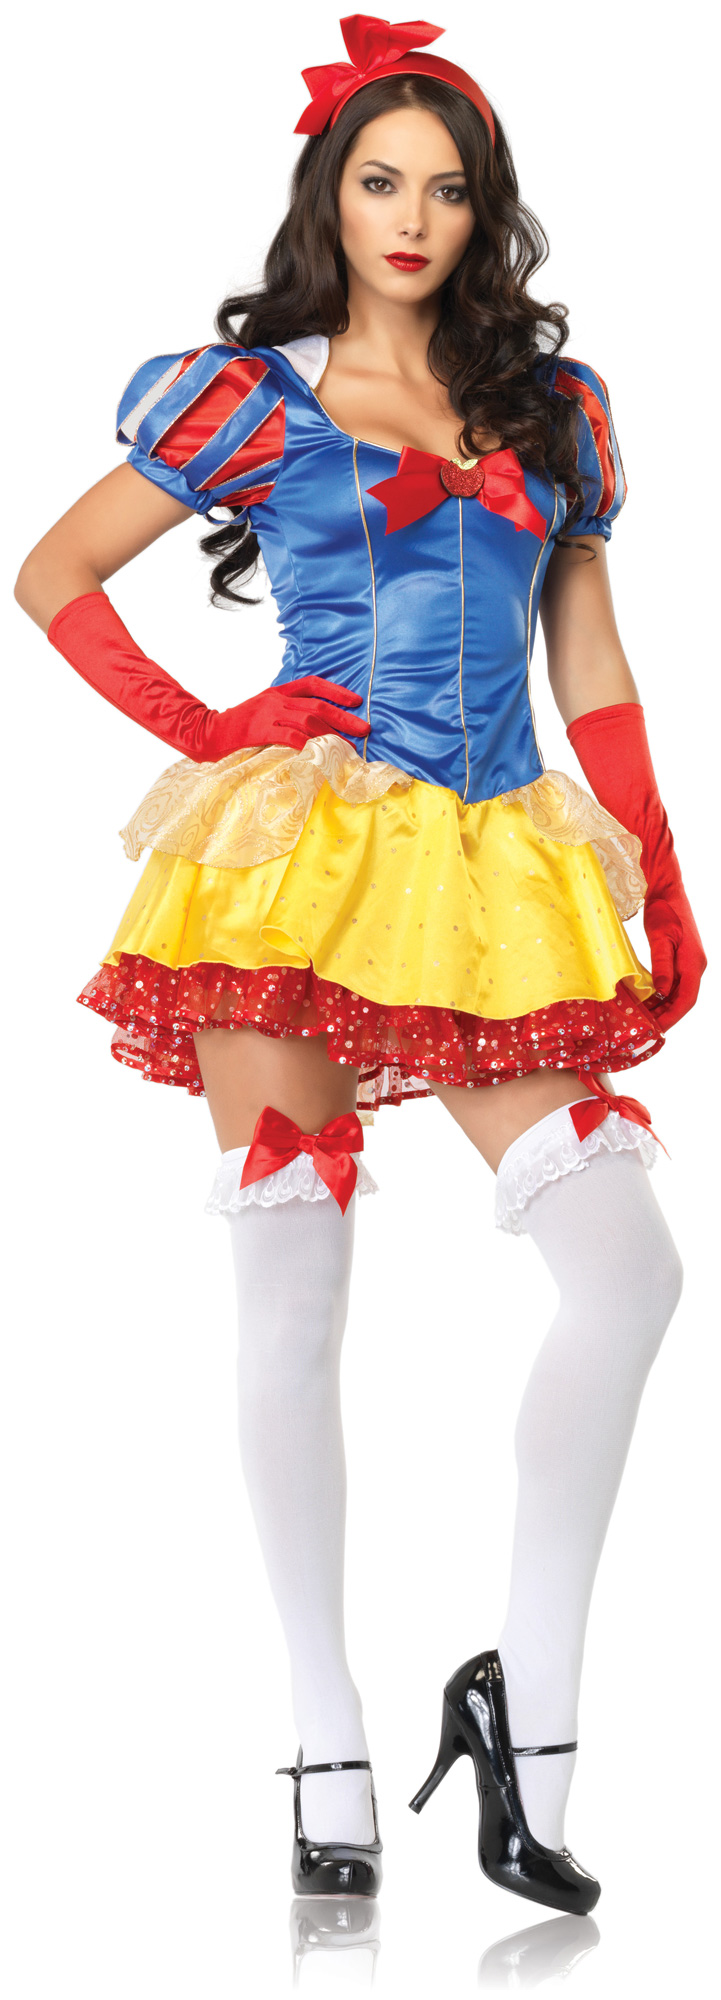 Phrase final, sexy adult halloween costumes snow white consider, that